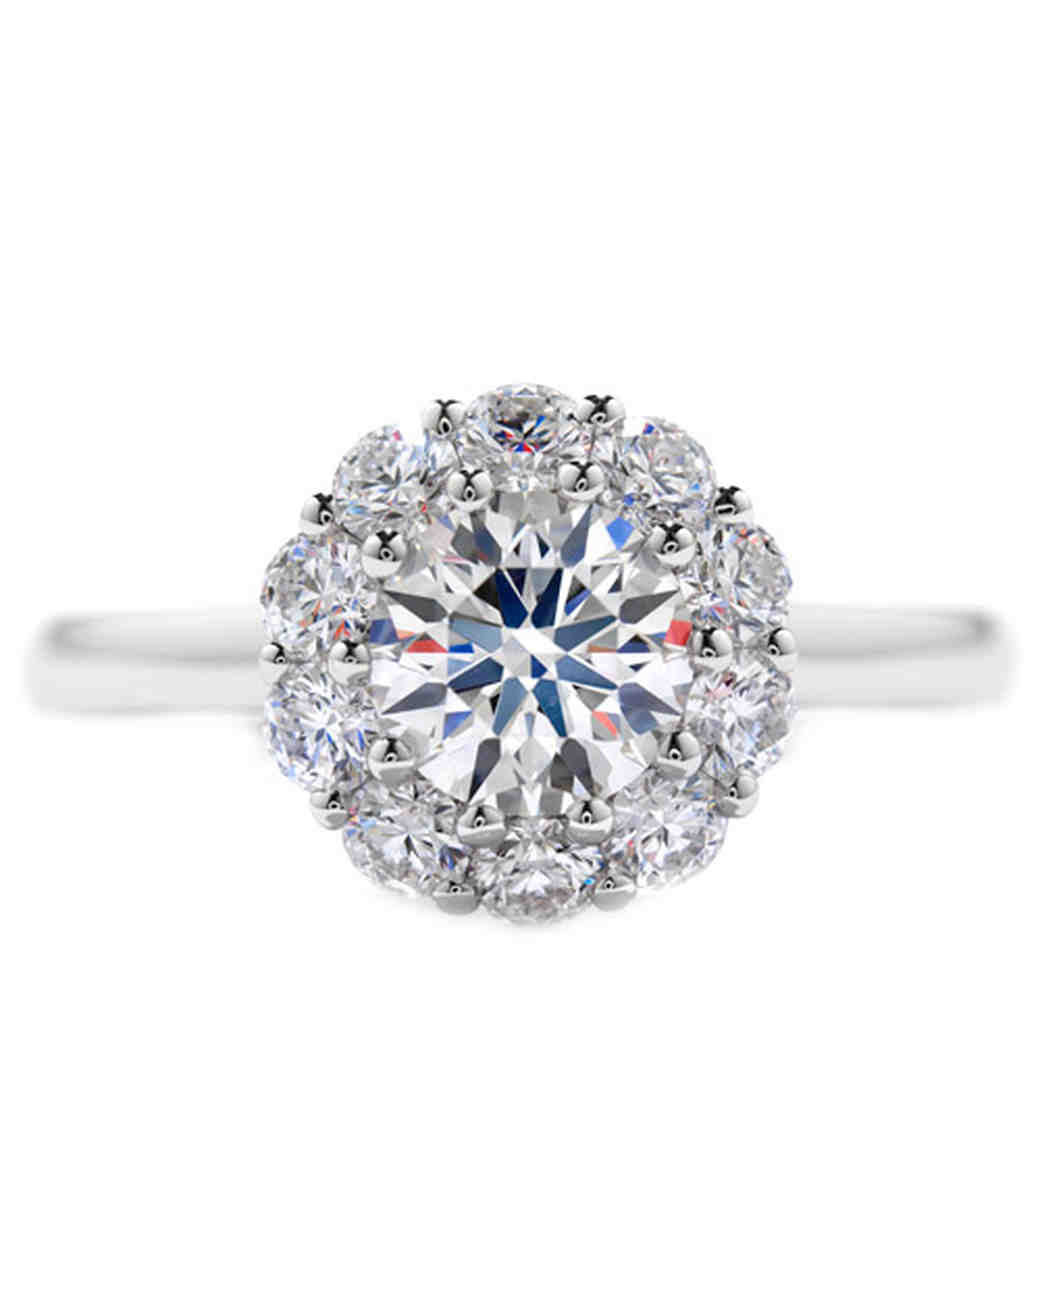 moissanite gift il for band engagement halo round wedding diamond friends best her white gold brilliant rings cut ring